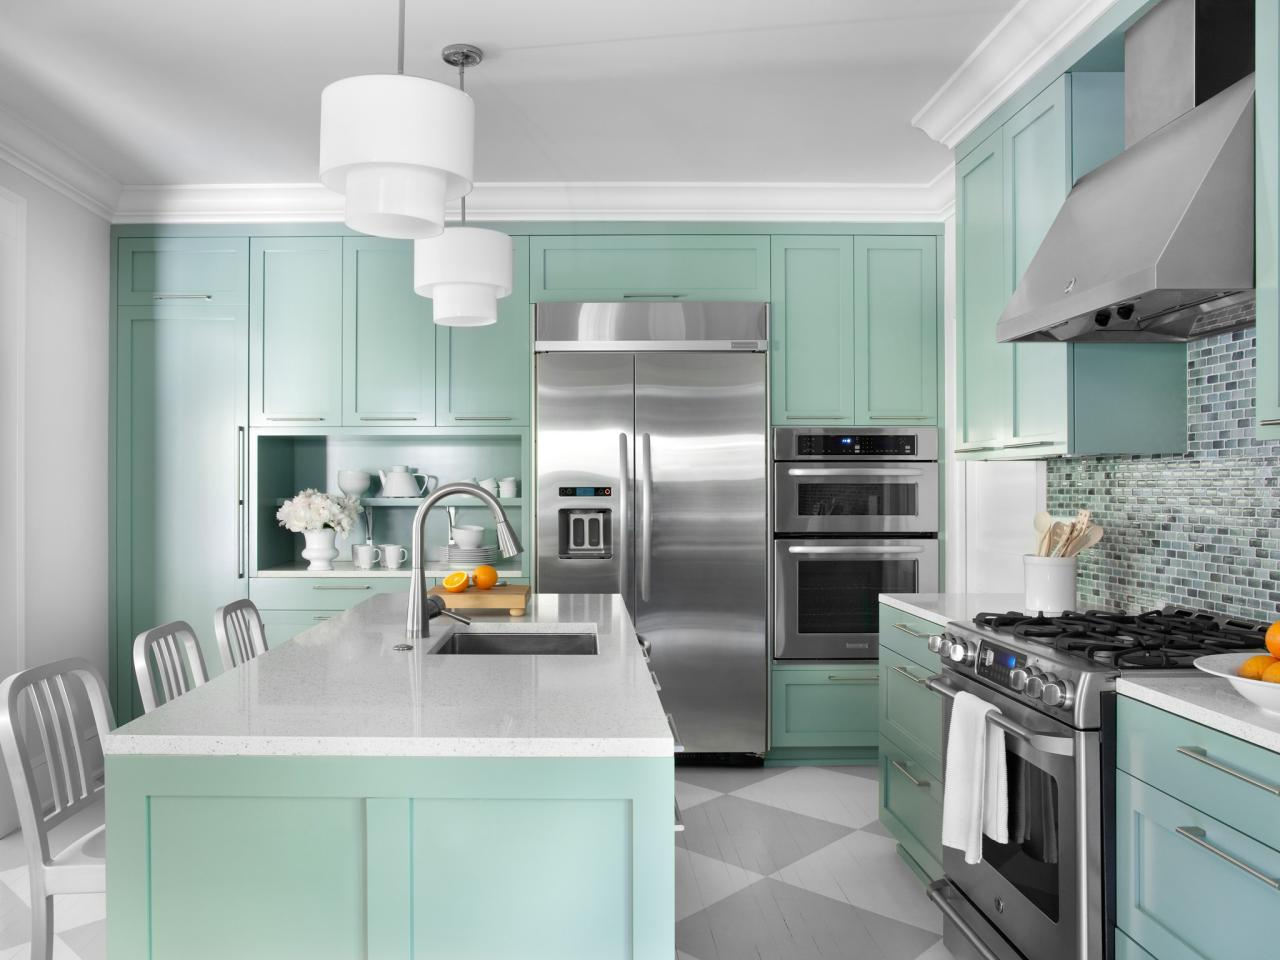 Colored Kitchen Cabinets color ideas for painting kitchen cabinets + hgtv pictures | hgtv